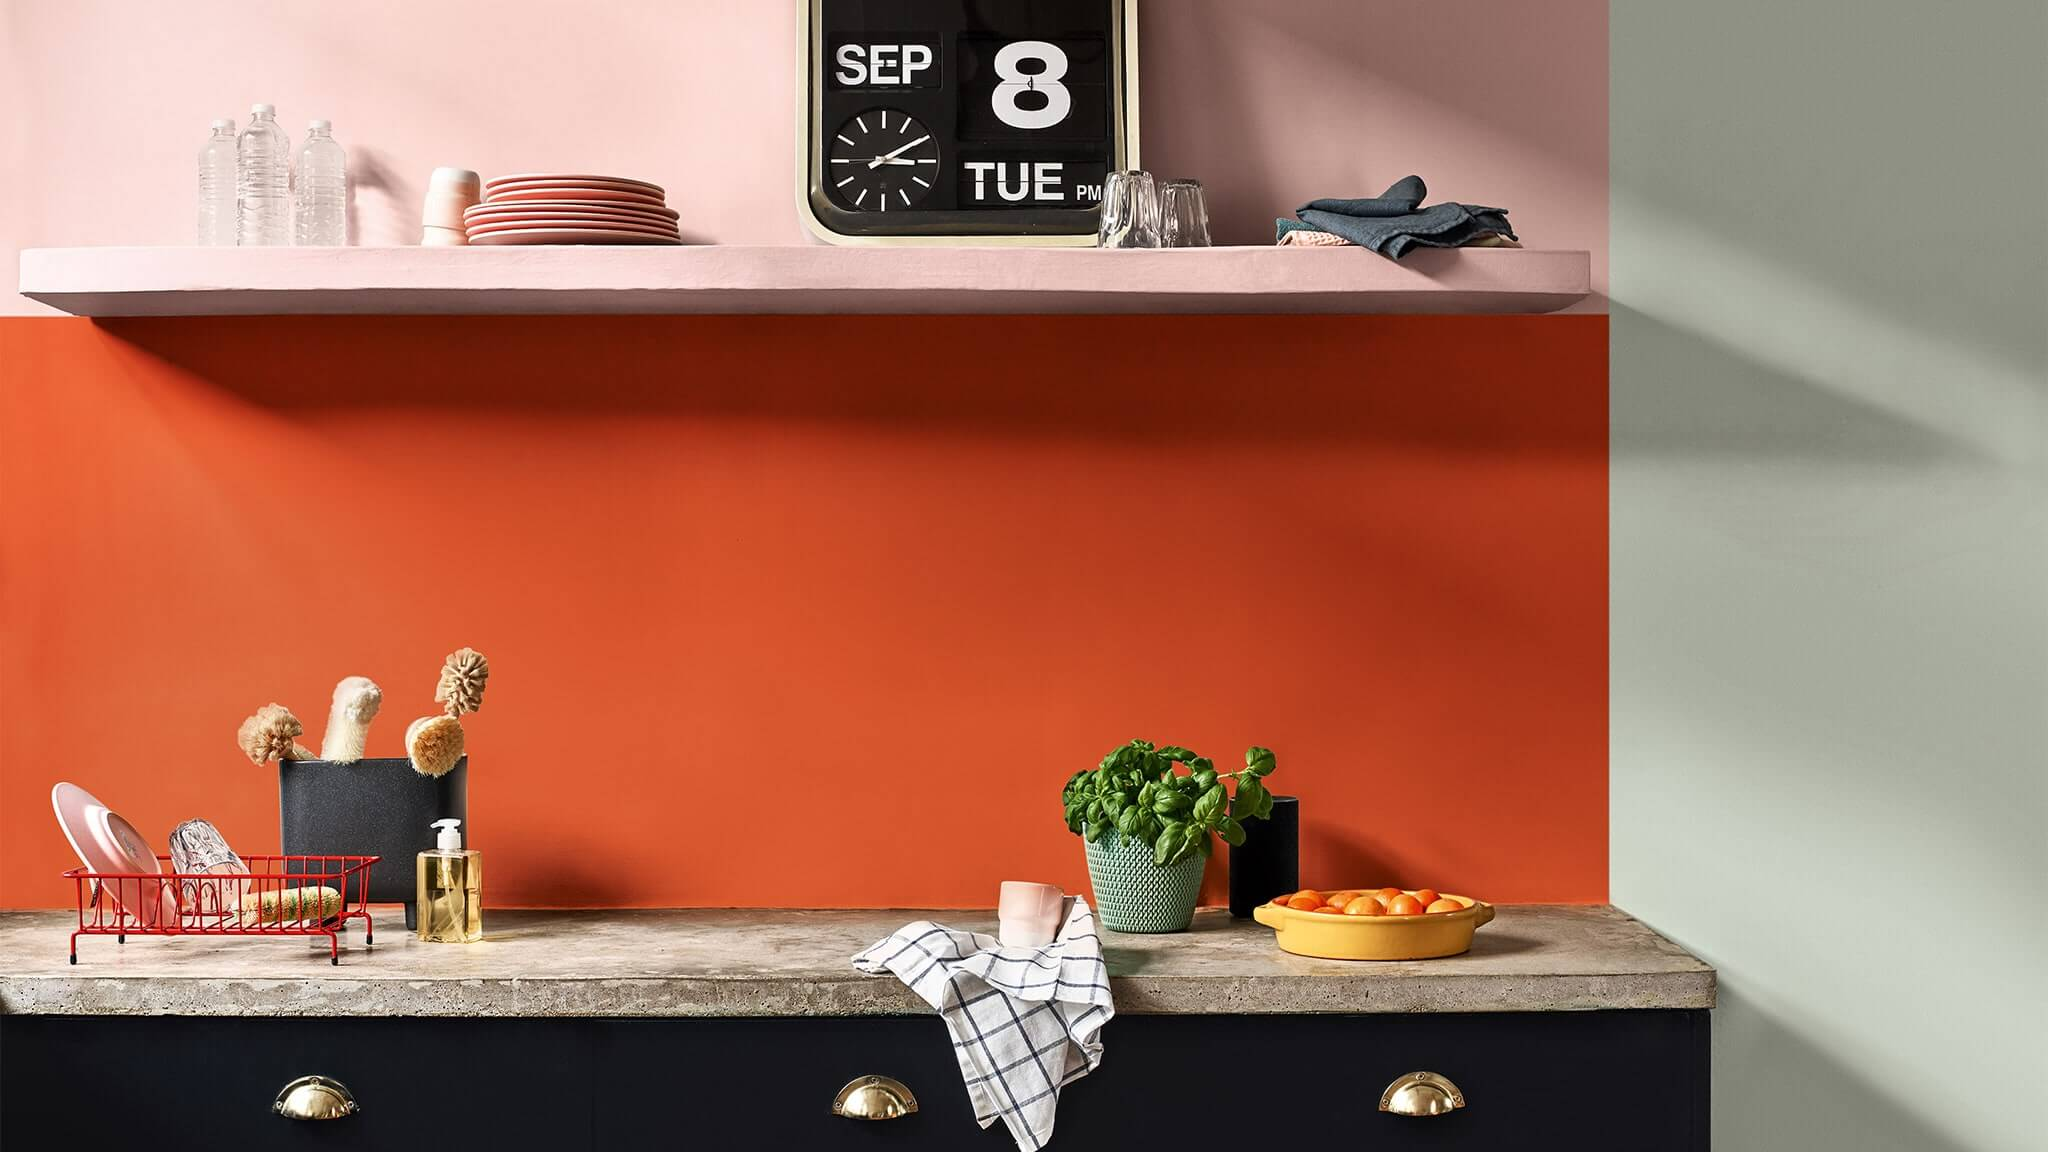 dulux-colour-futures-colour-of-the-year-2020-a-home-for-play-kitchen-inspiration-south-africa-7.jpg